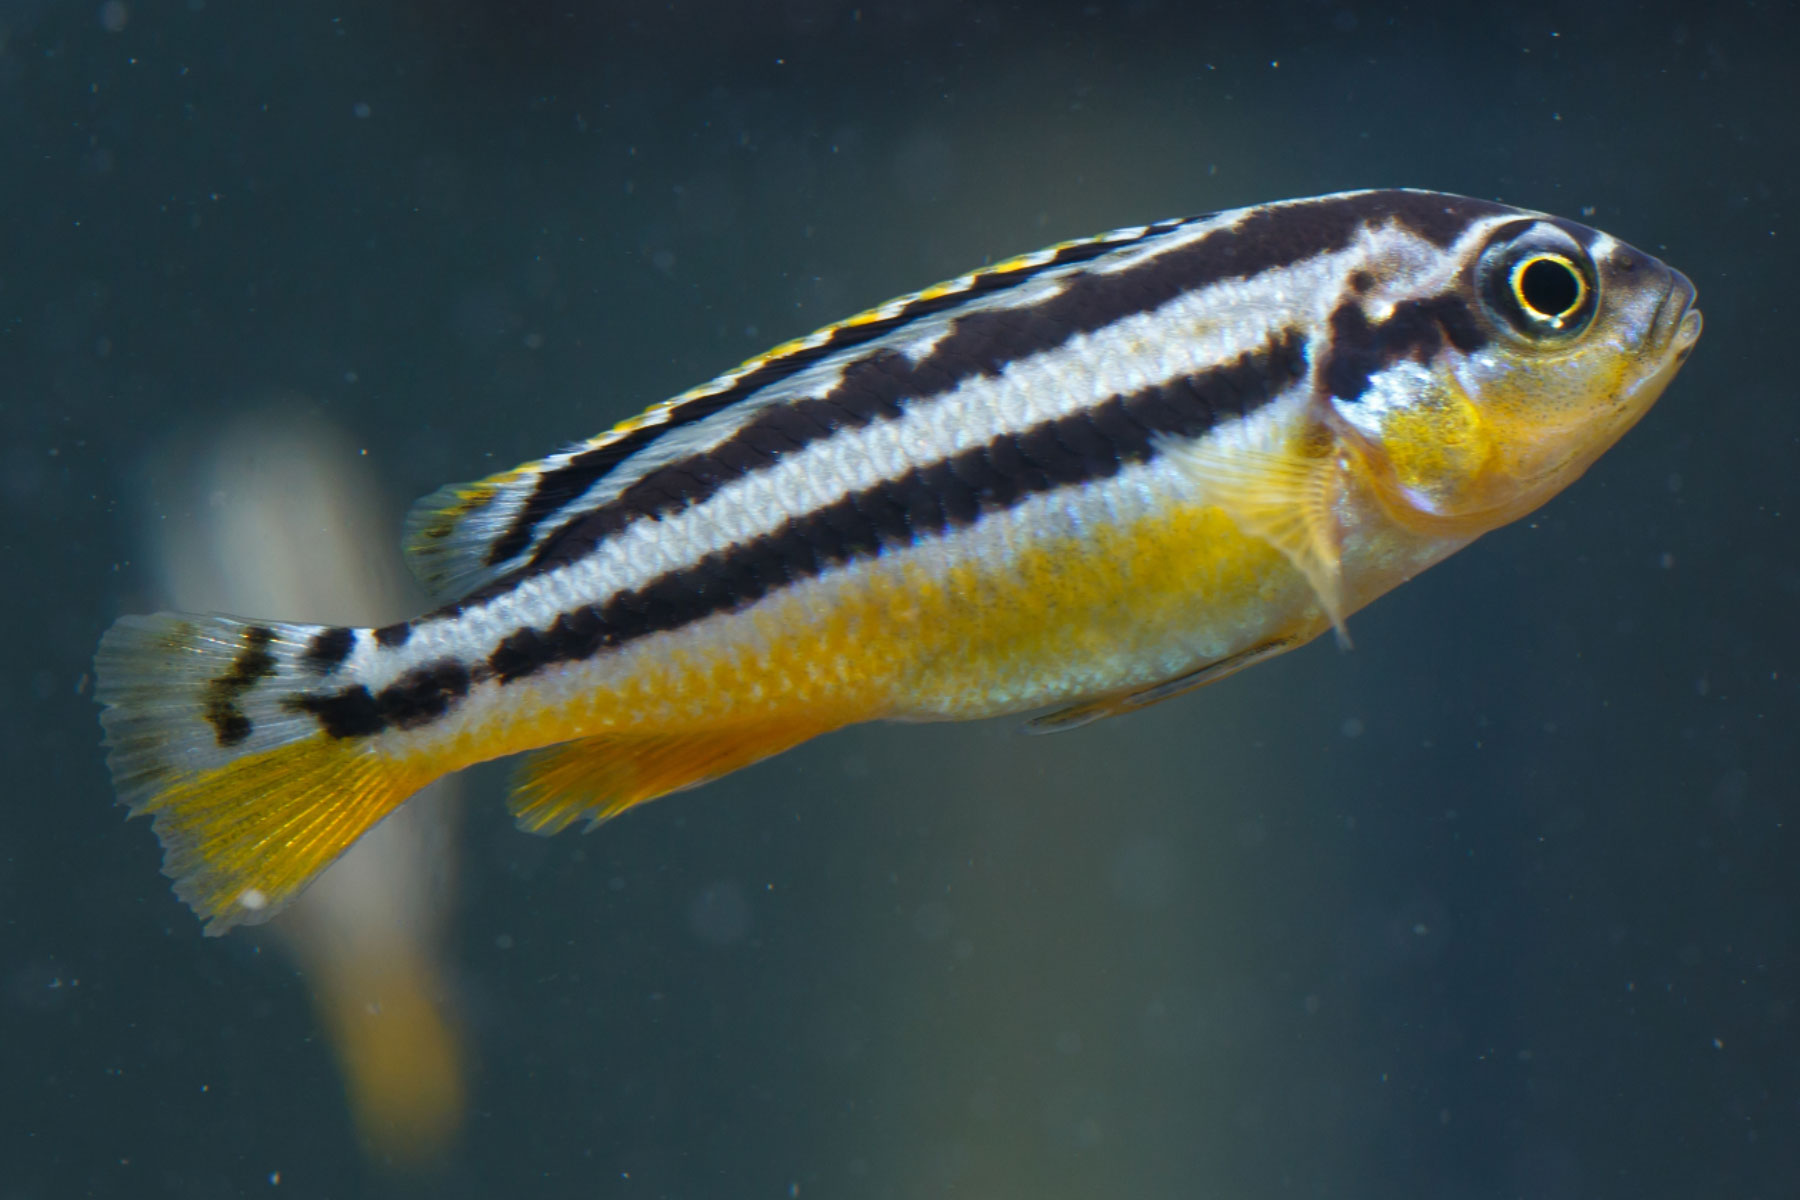 Danio rerio (zebrafish) is a good model organism for interaction data in the SignaLink tool